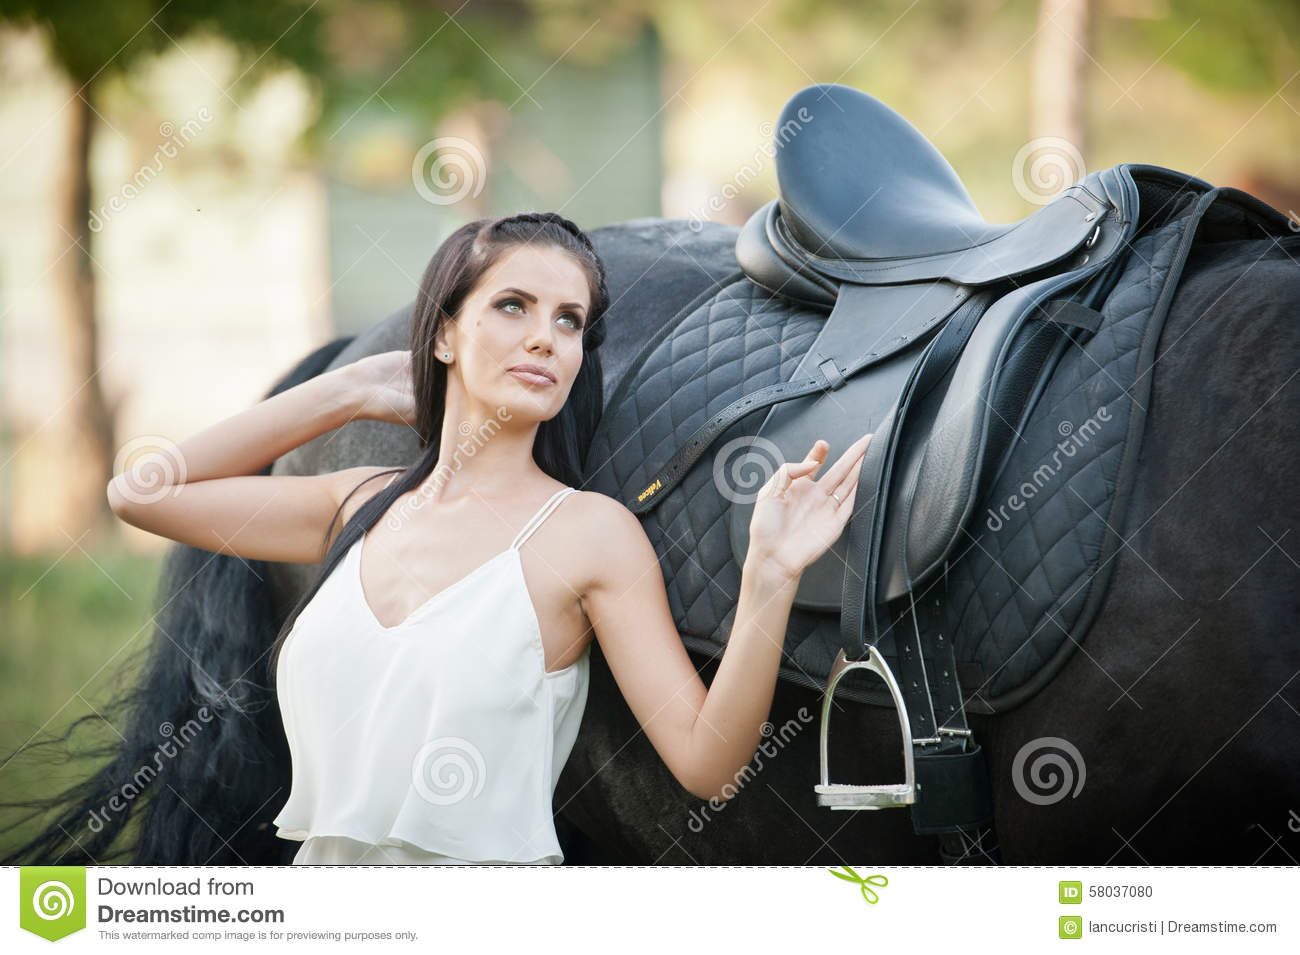 Fashionable Lady With White Bridal Dress Near Brown Horse